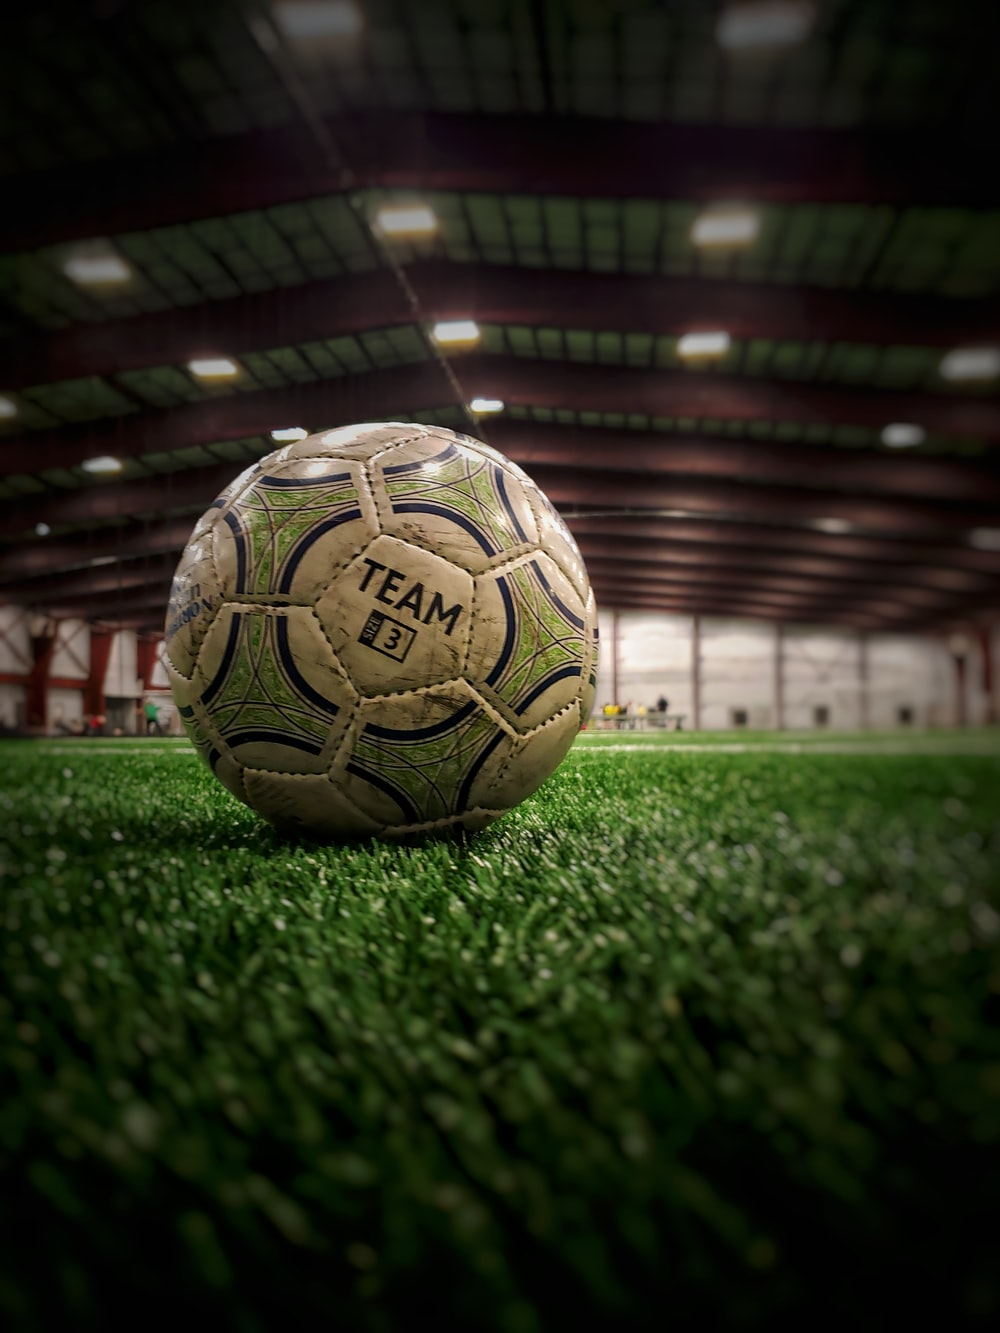 Best 500 Football Pictures Hd Download Free Images On Unsplash Cool pictures for profile dp boys and girls profile dps for display photos. best 500 football pictures hd